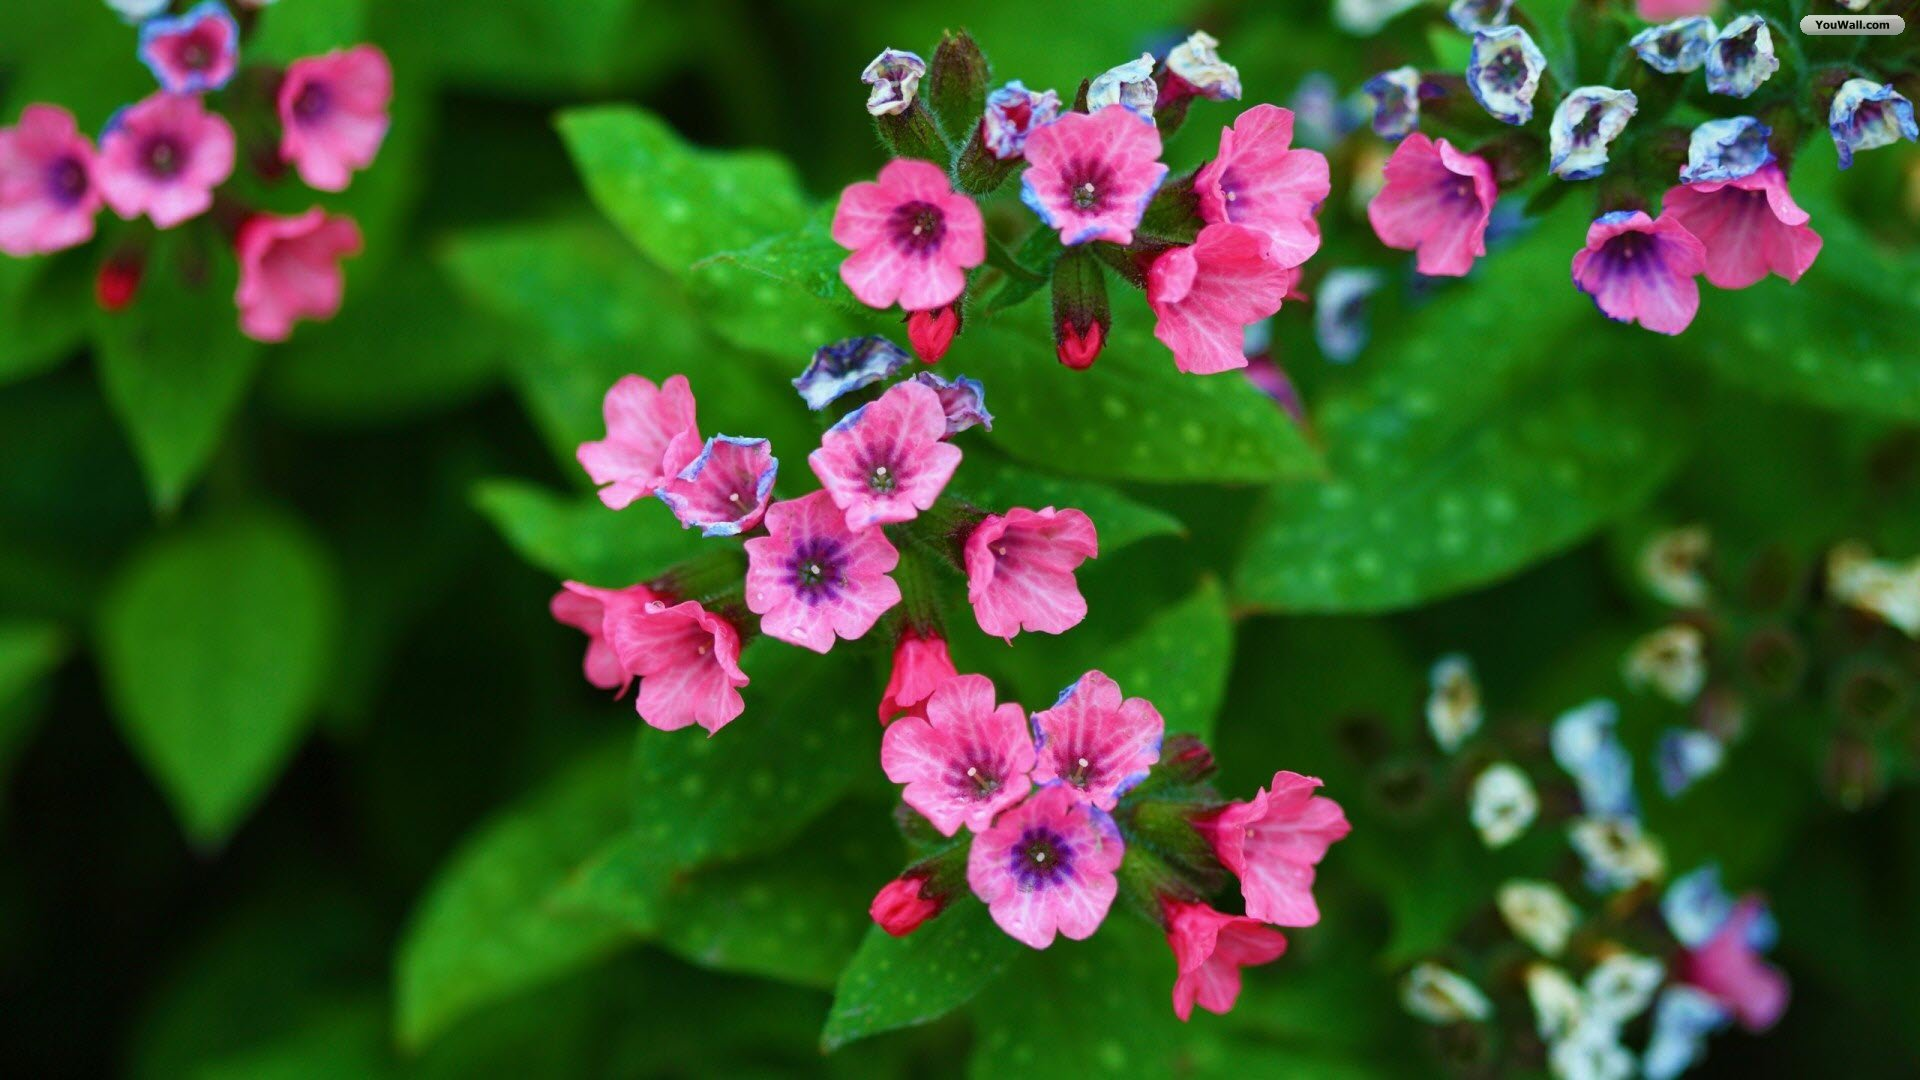 Tiny Pink Flowers Wallpaper   wallpaperwallpapersfree wallpaper 1920x1080